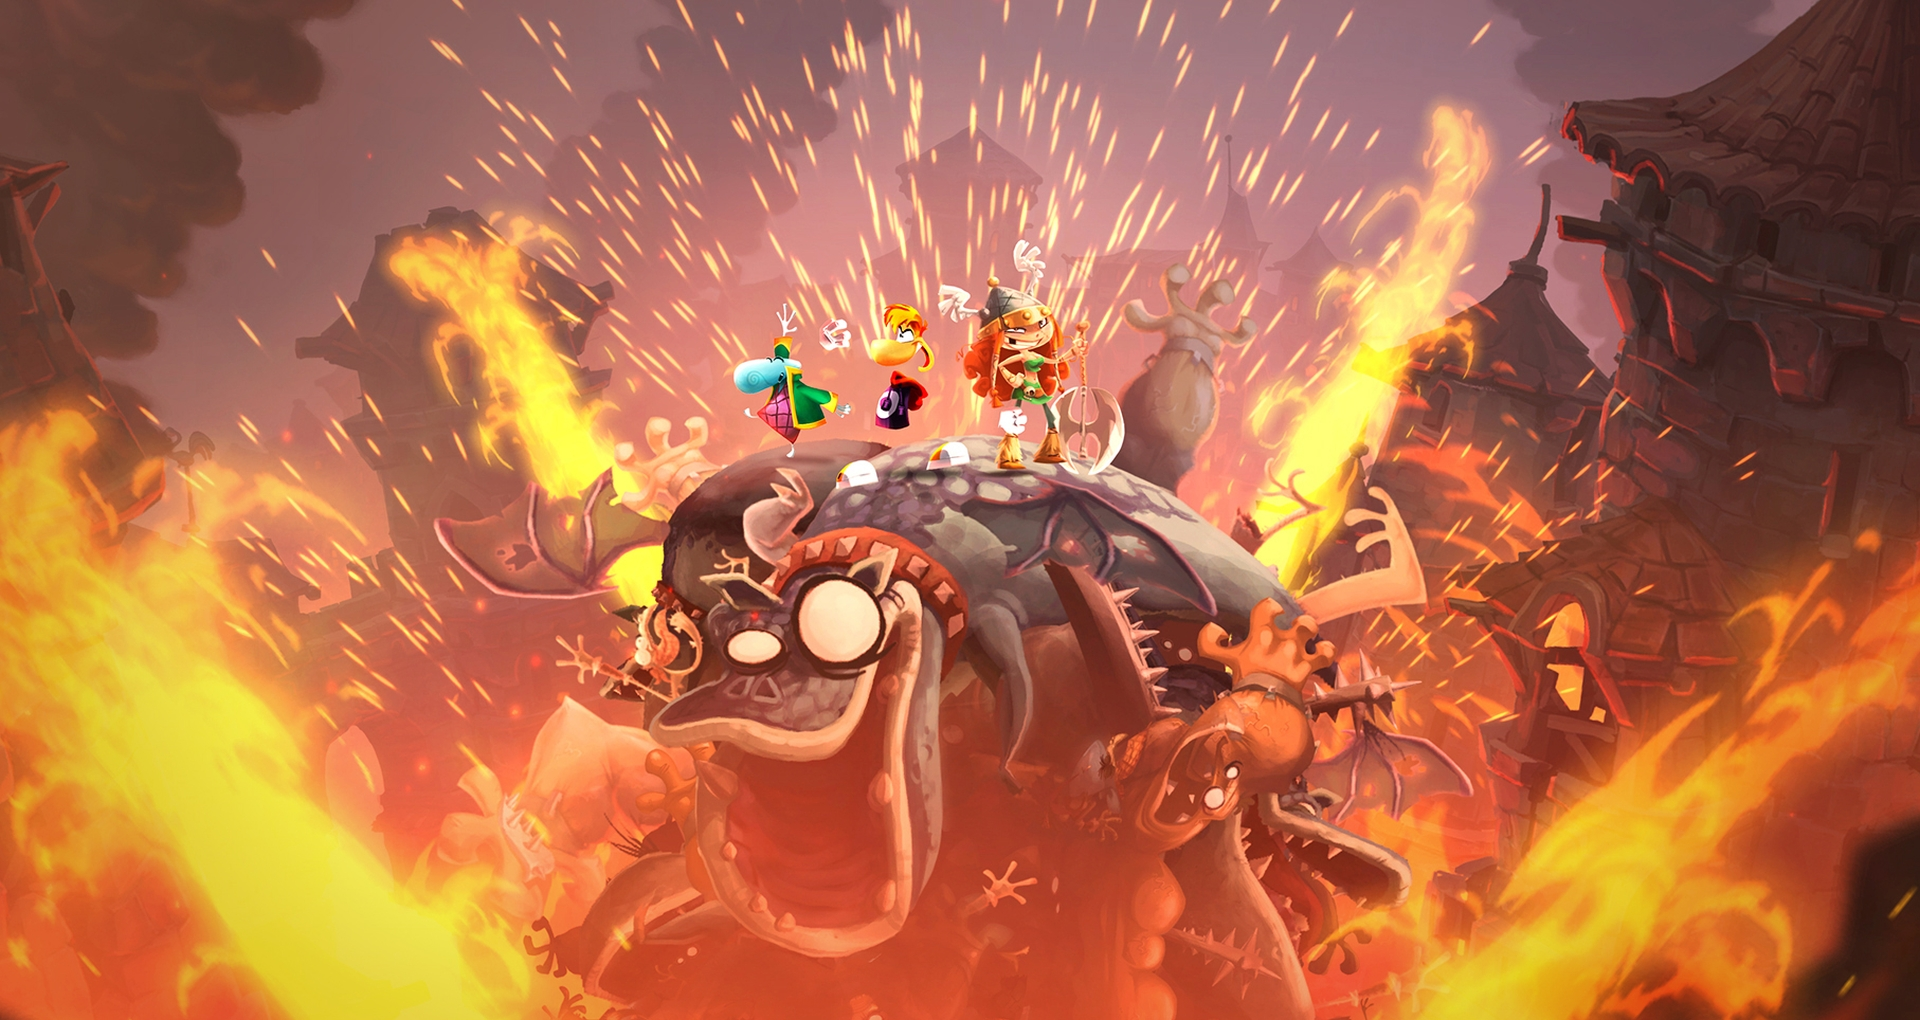 rayman-legends-gamescom-2013-03